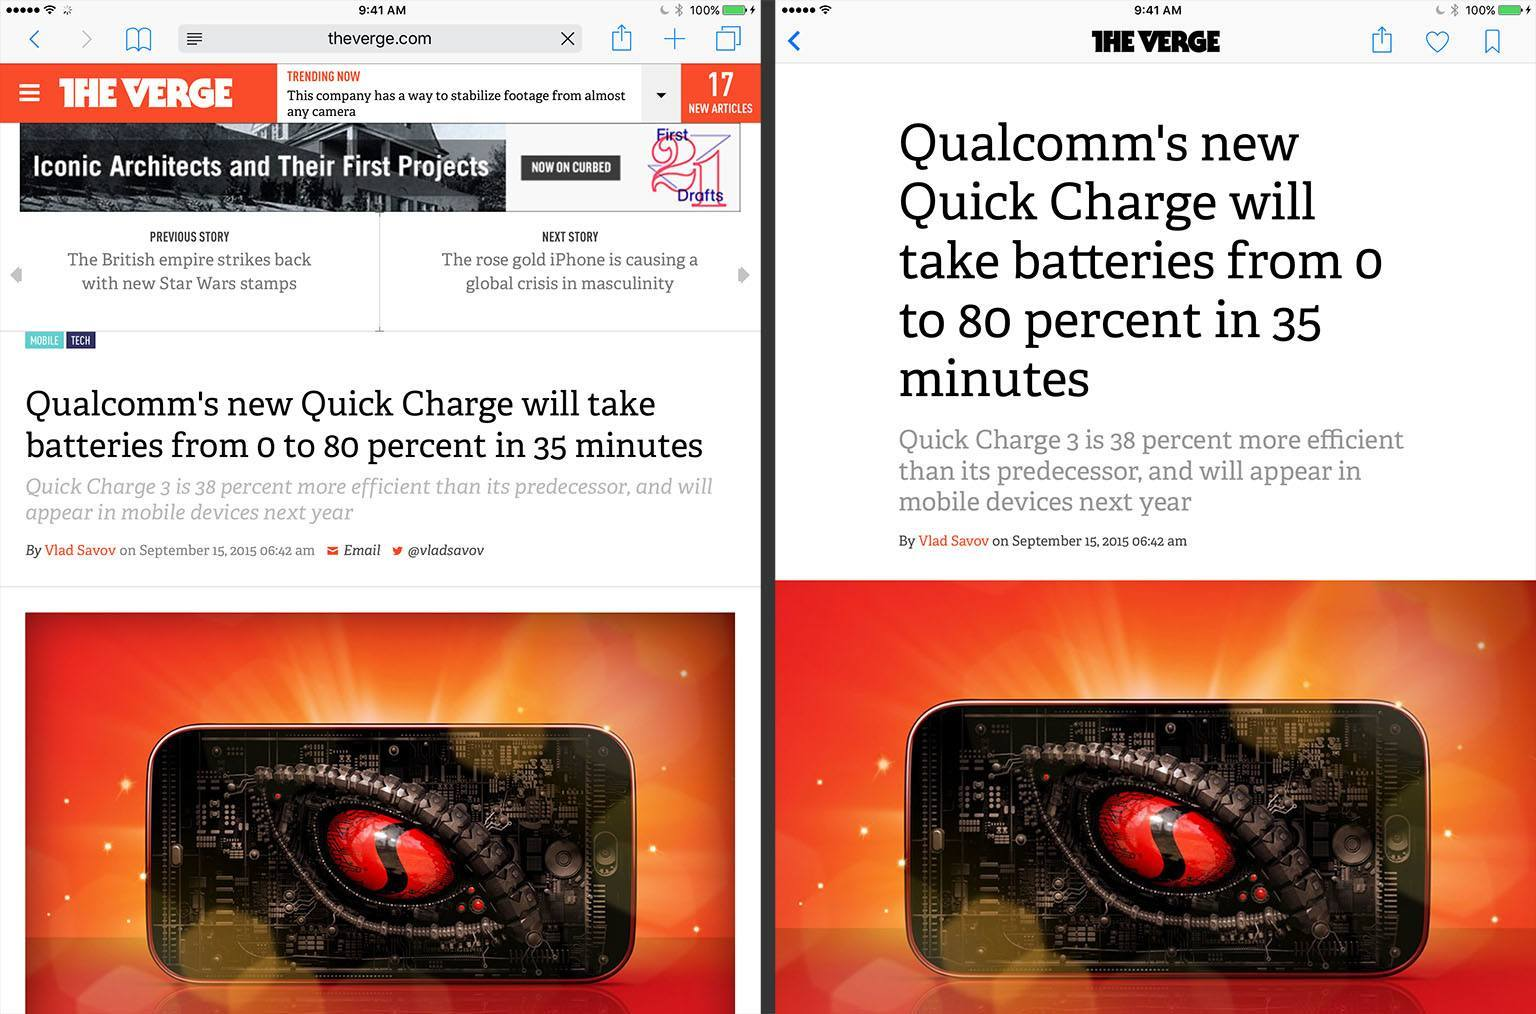 Reading an article from The Verge on their website (left) and in News (right)